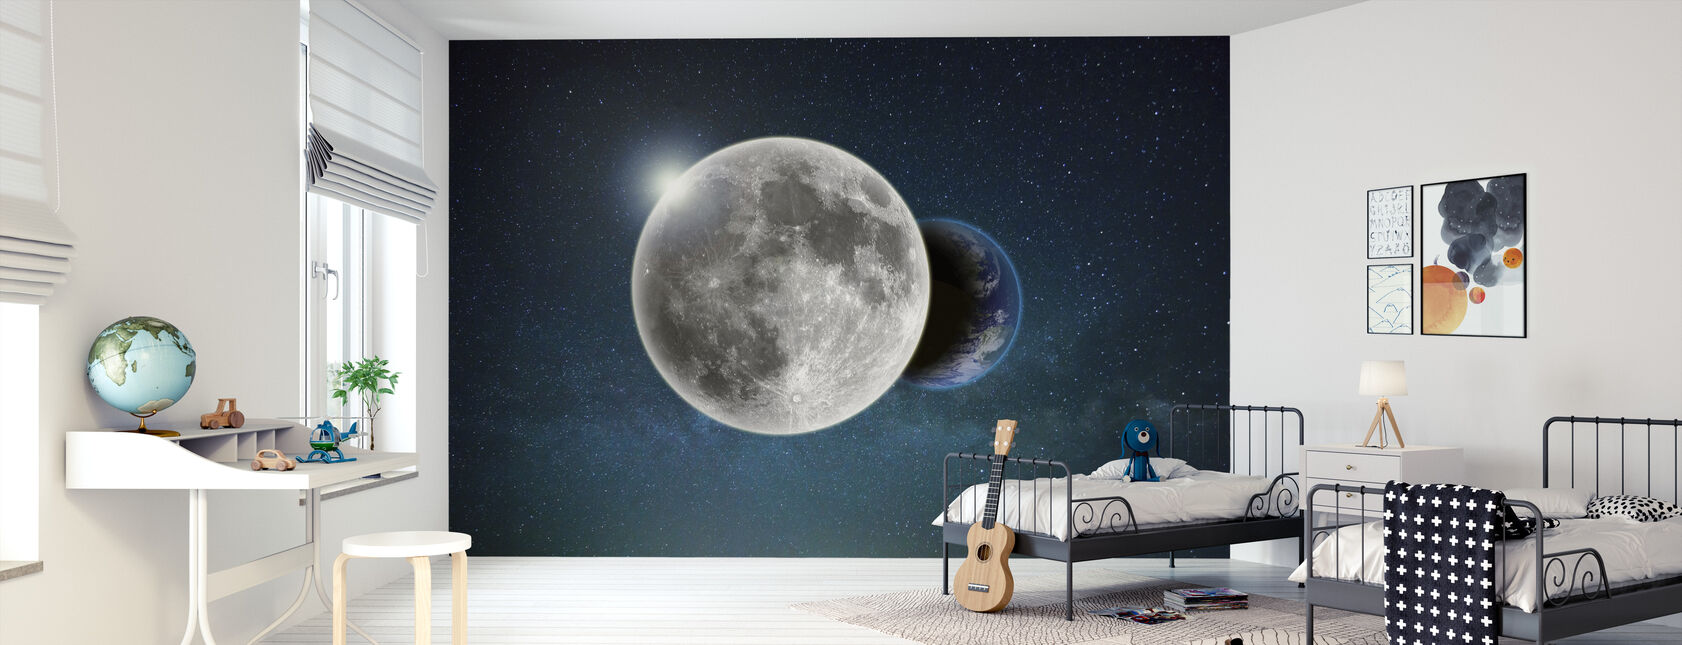 Earth and Moon - Wallpaper - Kids Room